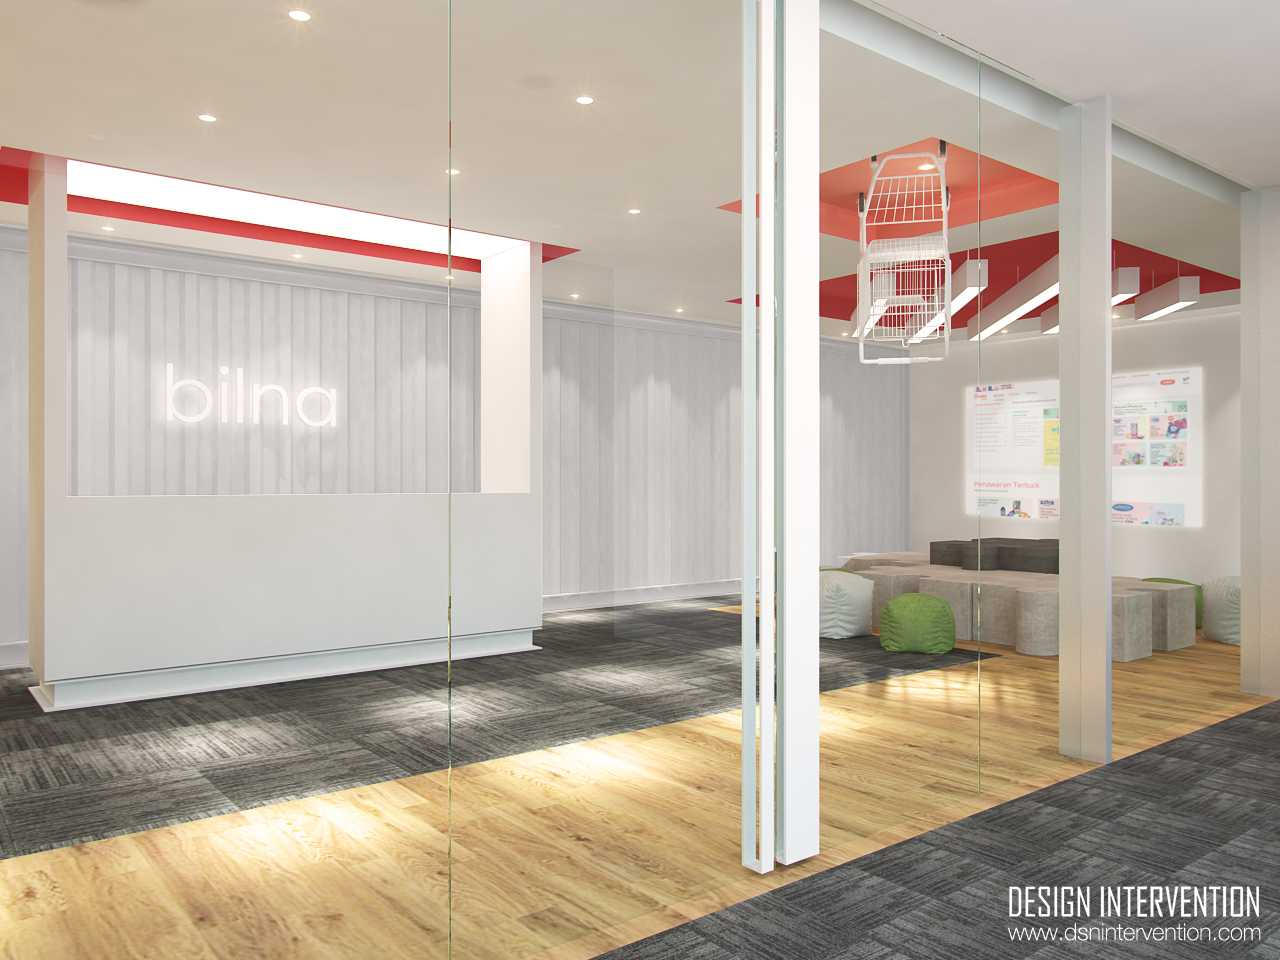 Design Intervention B - Office Concept Bsd Office Park Bsd Office Park Lobby  13966